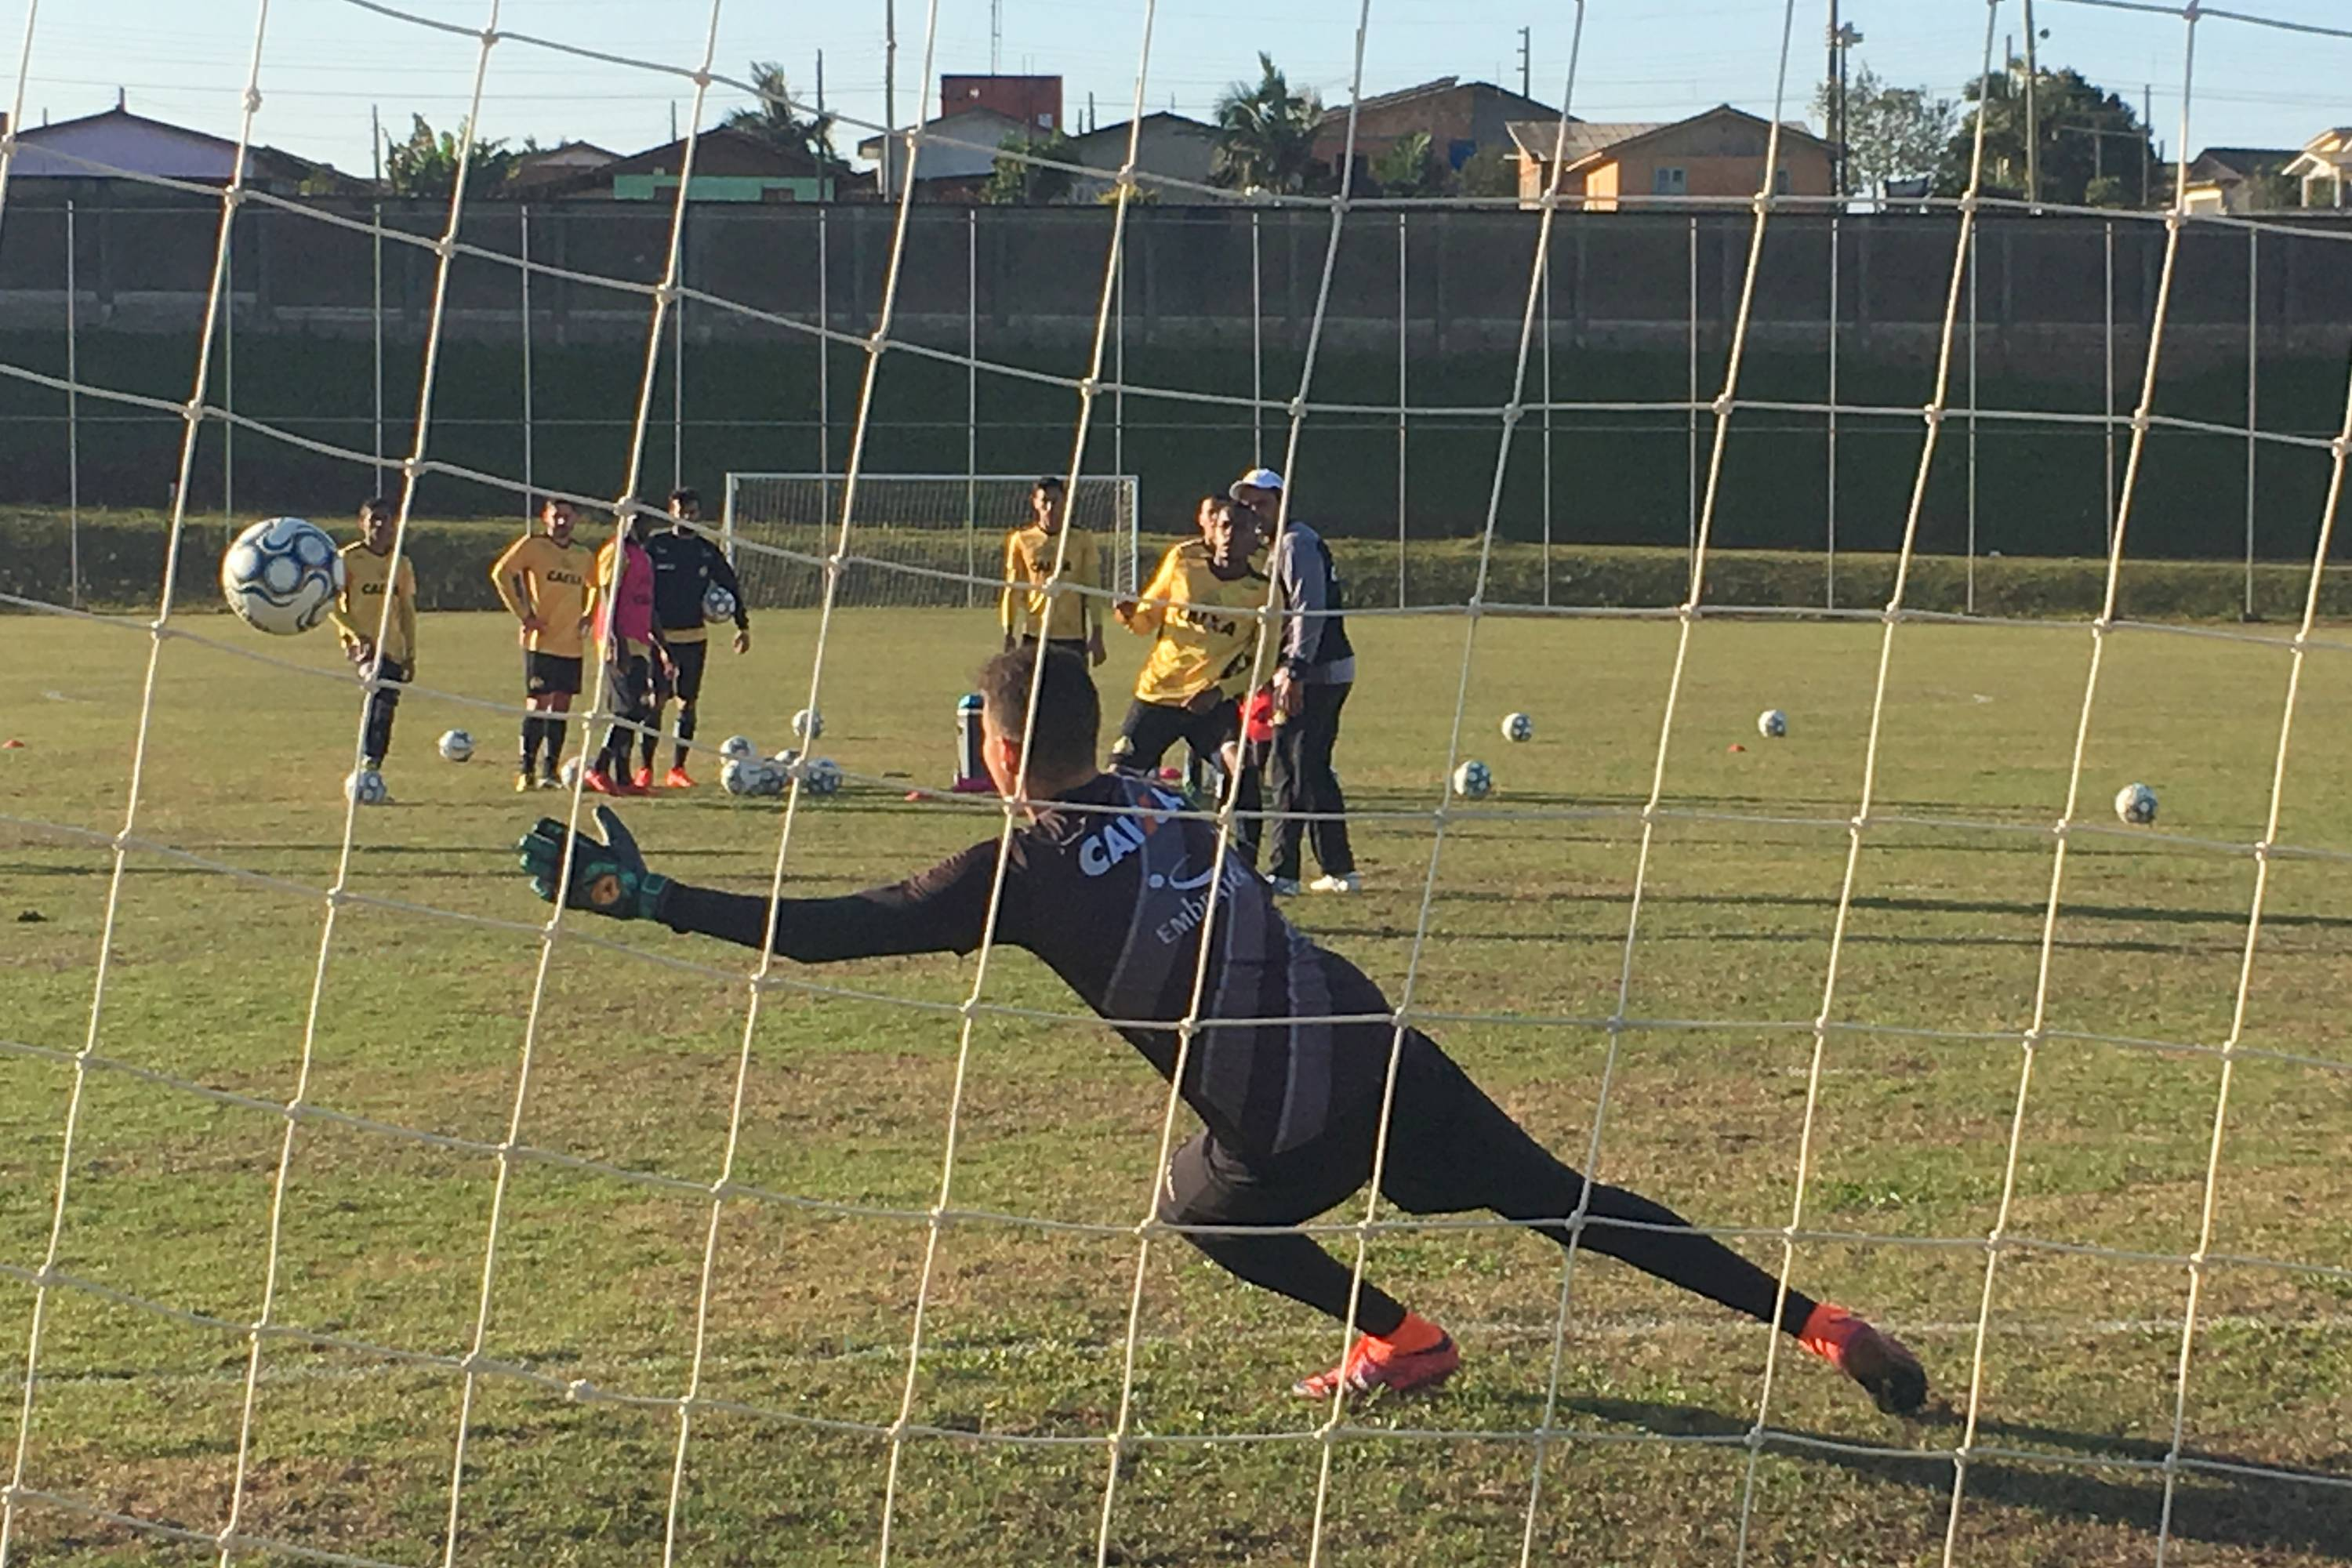 Treino do Criciúma no CT (Tarde) - 17/08